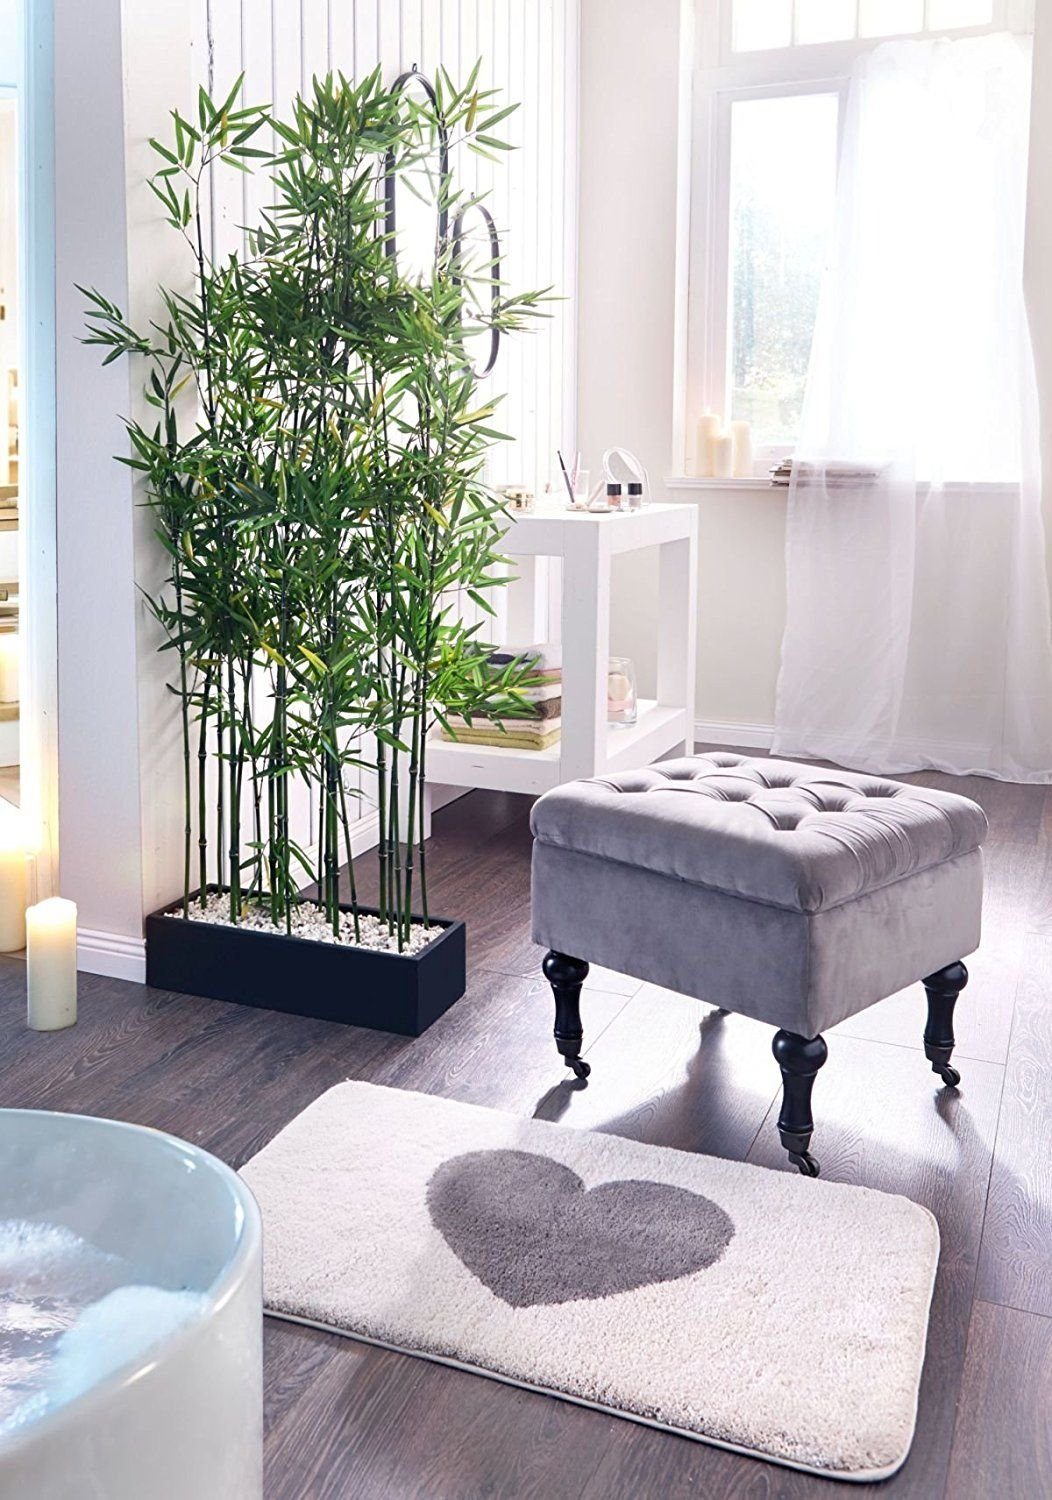 Bamboo Plant as part of Japanese Home design via Simphome